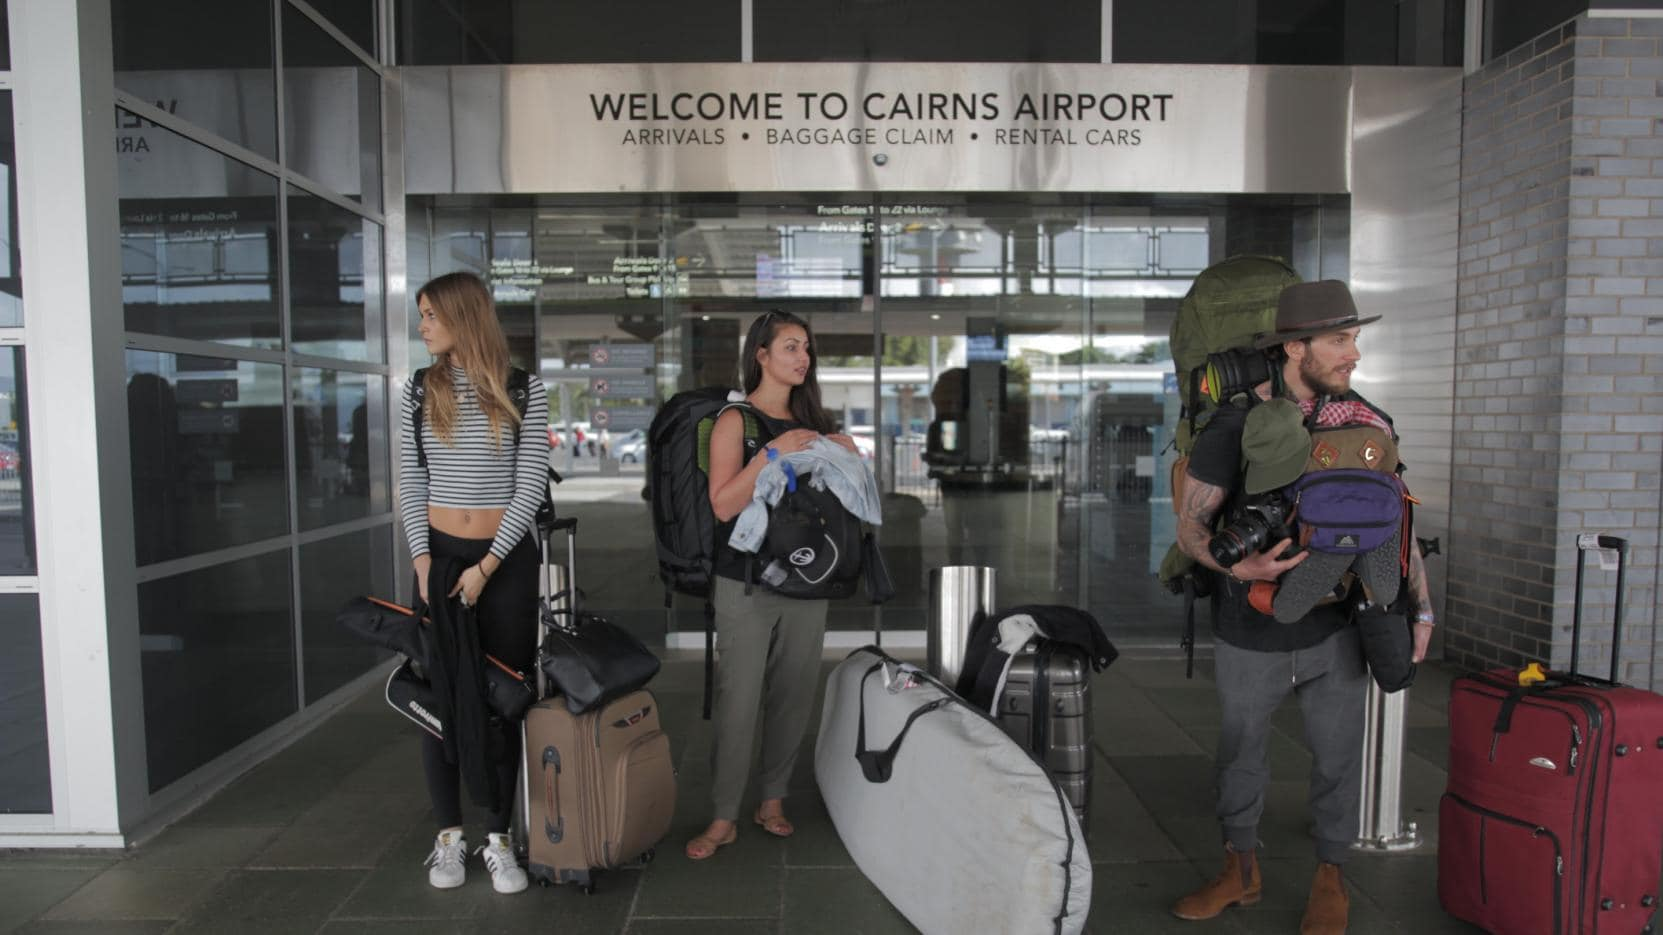 Cairns Airport, Cairns, QLD © Hostels Australia